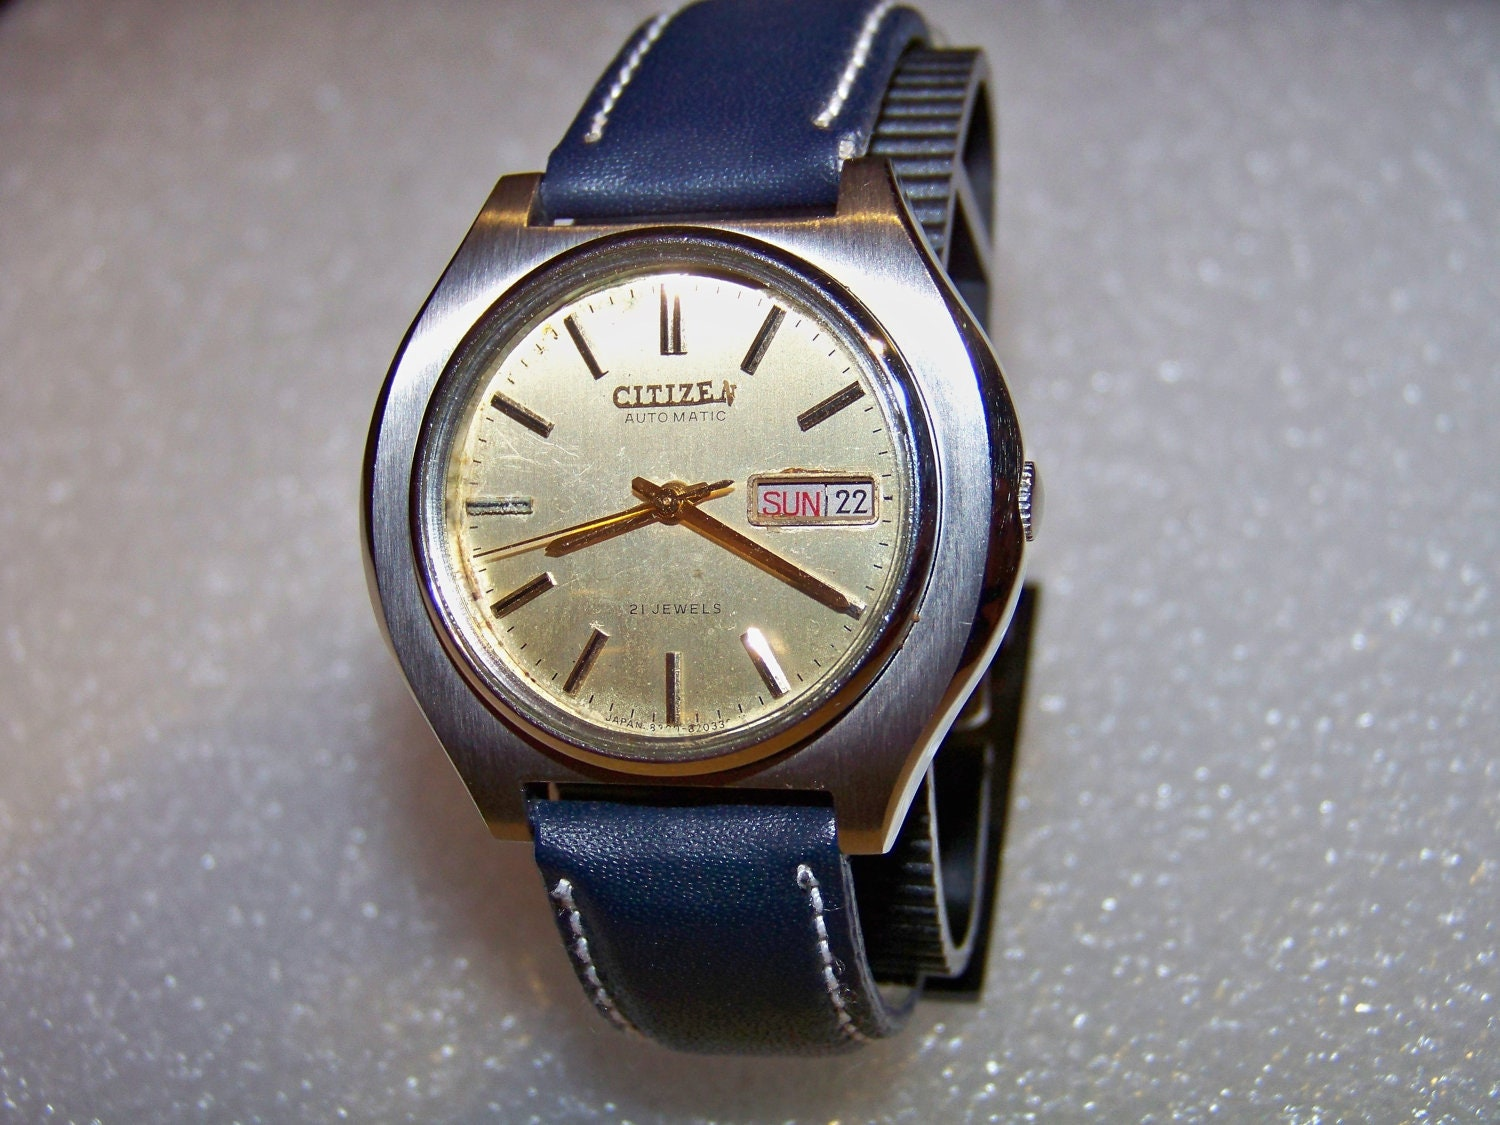 Vintage seiko 17 jewel automatic watch Etsy